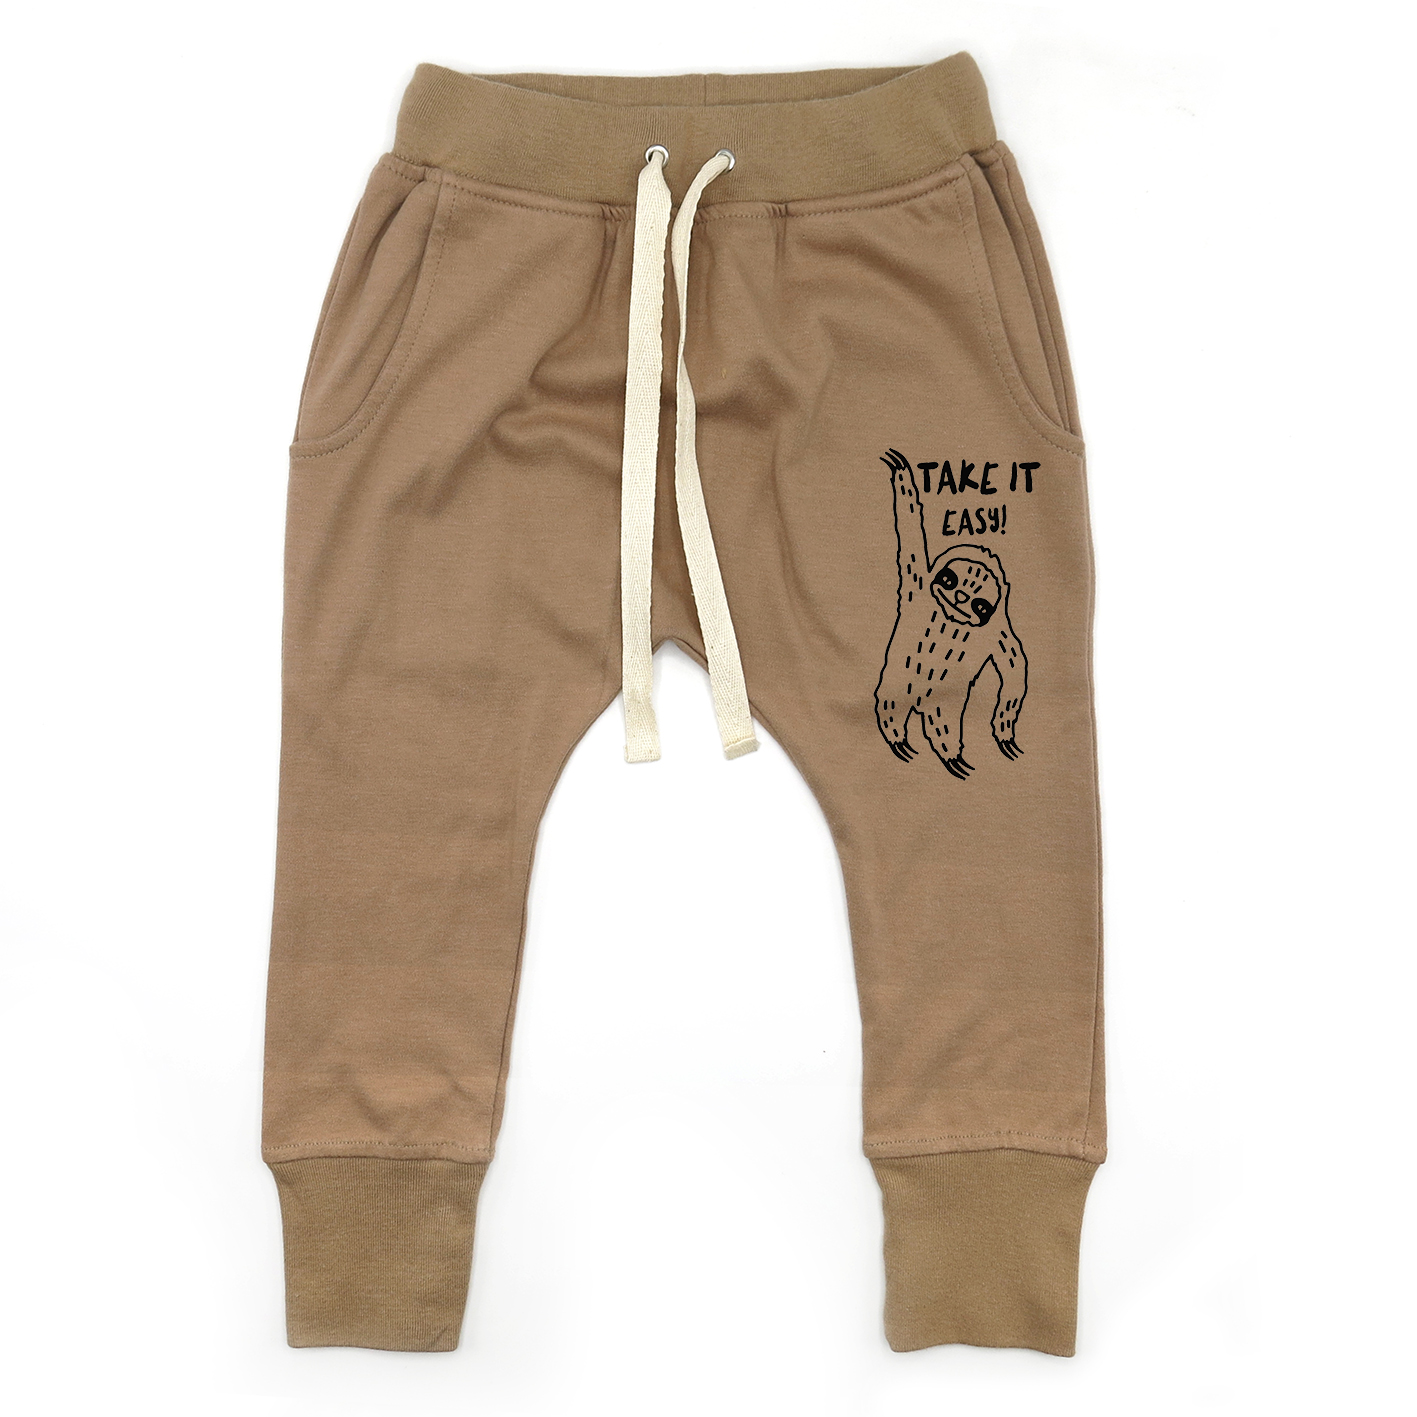 BABY&KIDS LP0554 [C] 0M.-7Y.TAKE IT EASY SLOUCH PANT